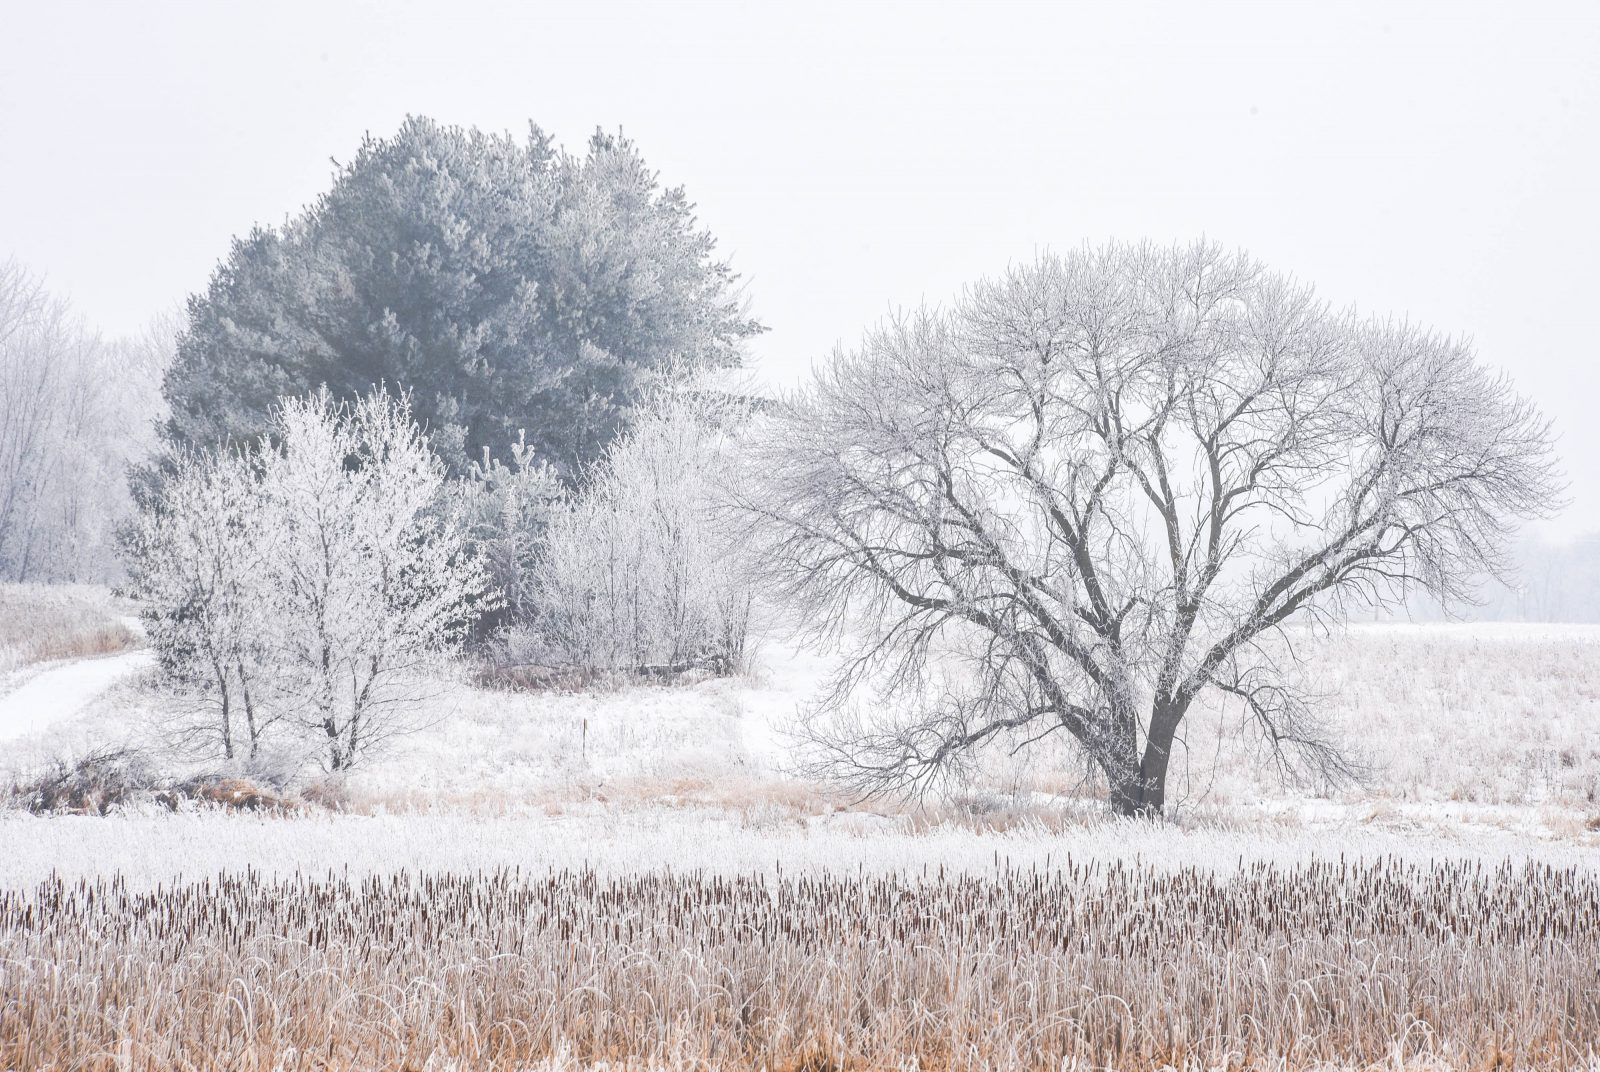 Covered in Hoar Frost